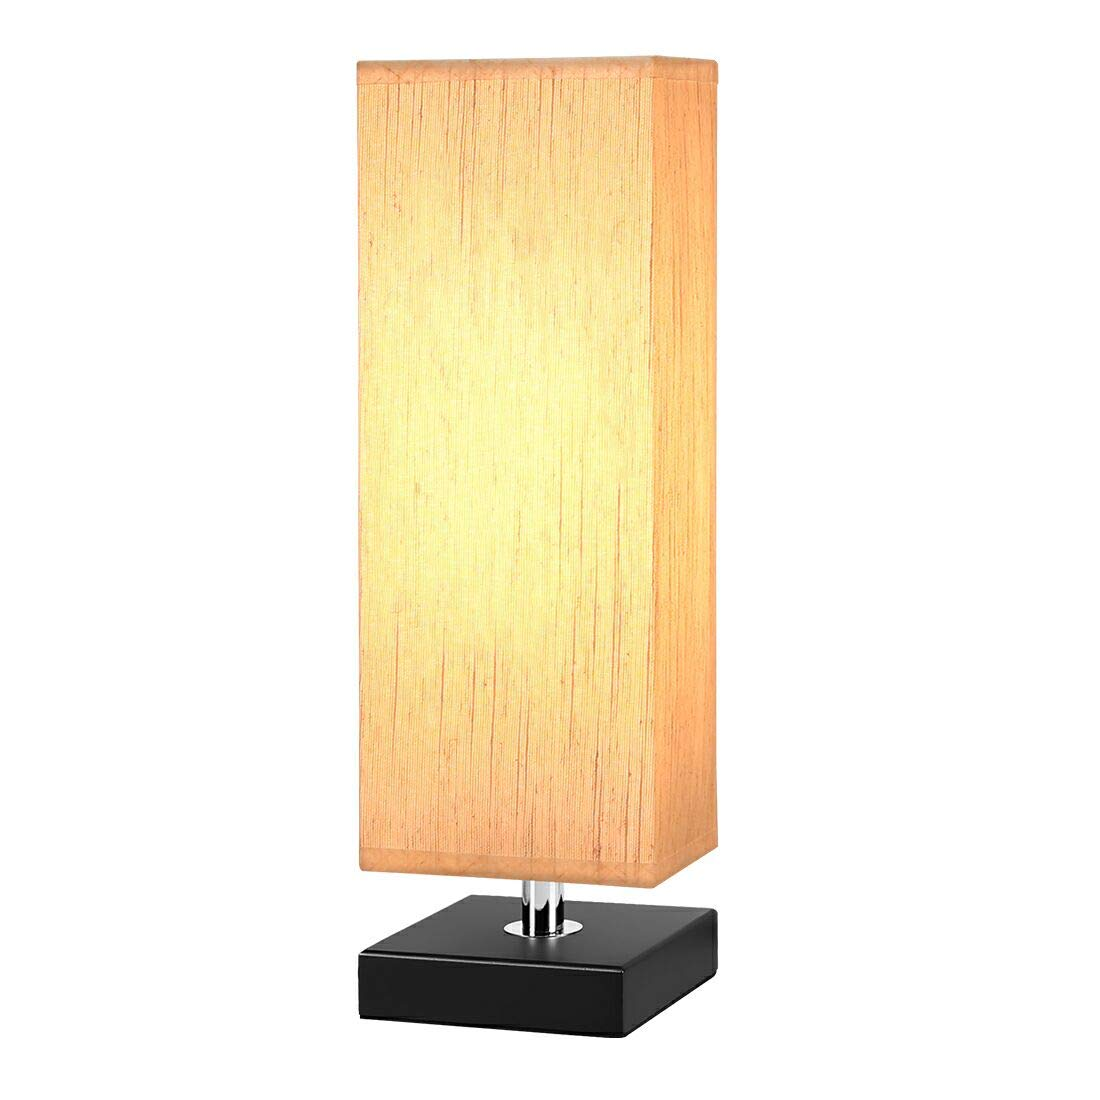 Best Vintage Table Lamps For Bedrooms Amazoncom - Vintage table lamps for bedroom